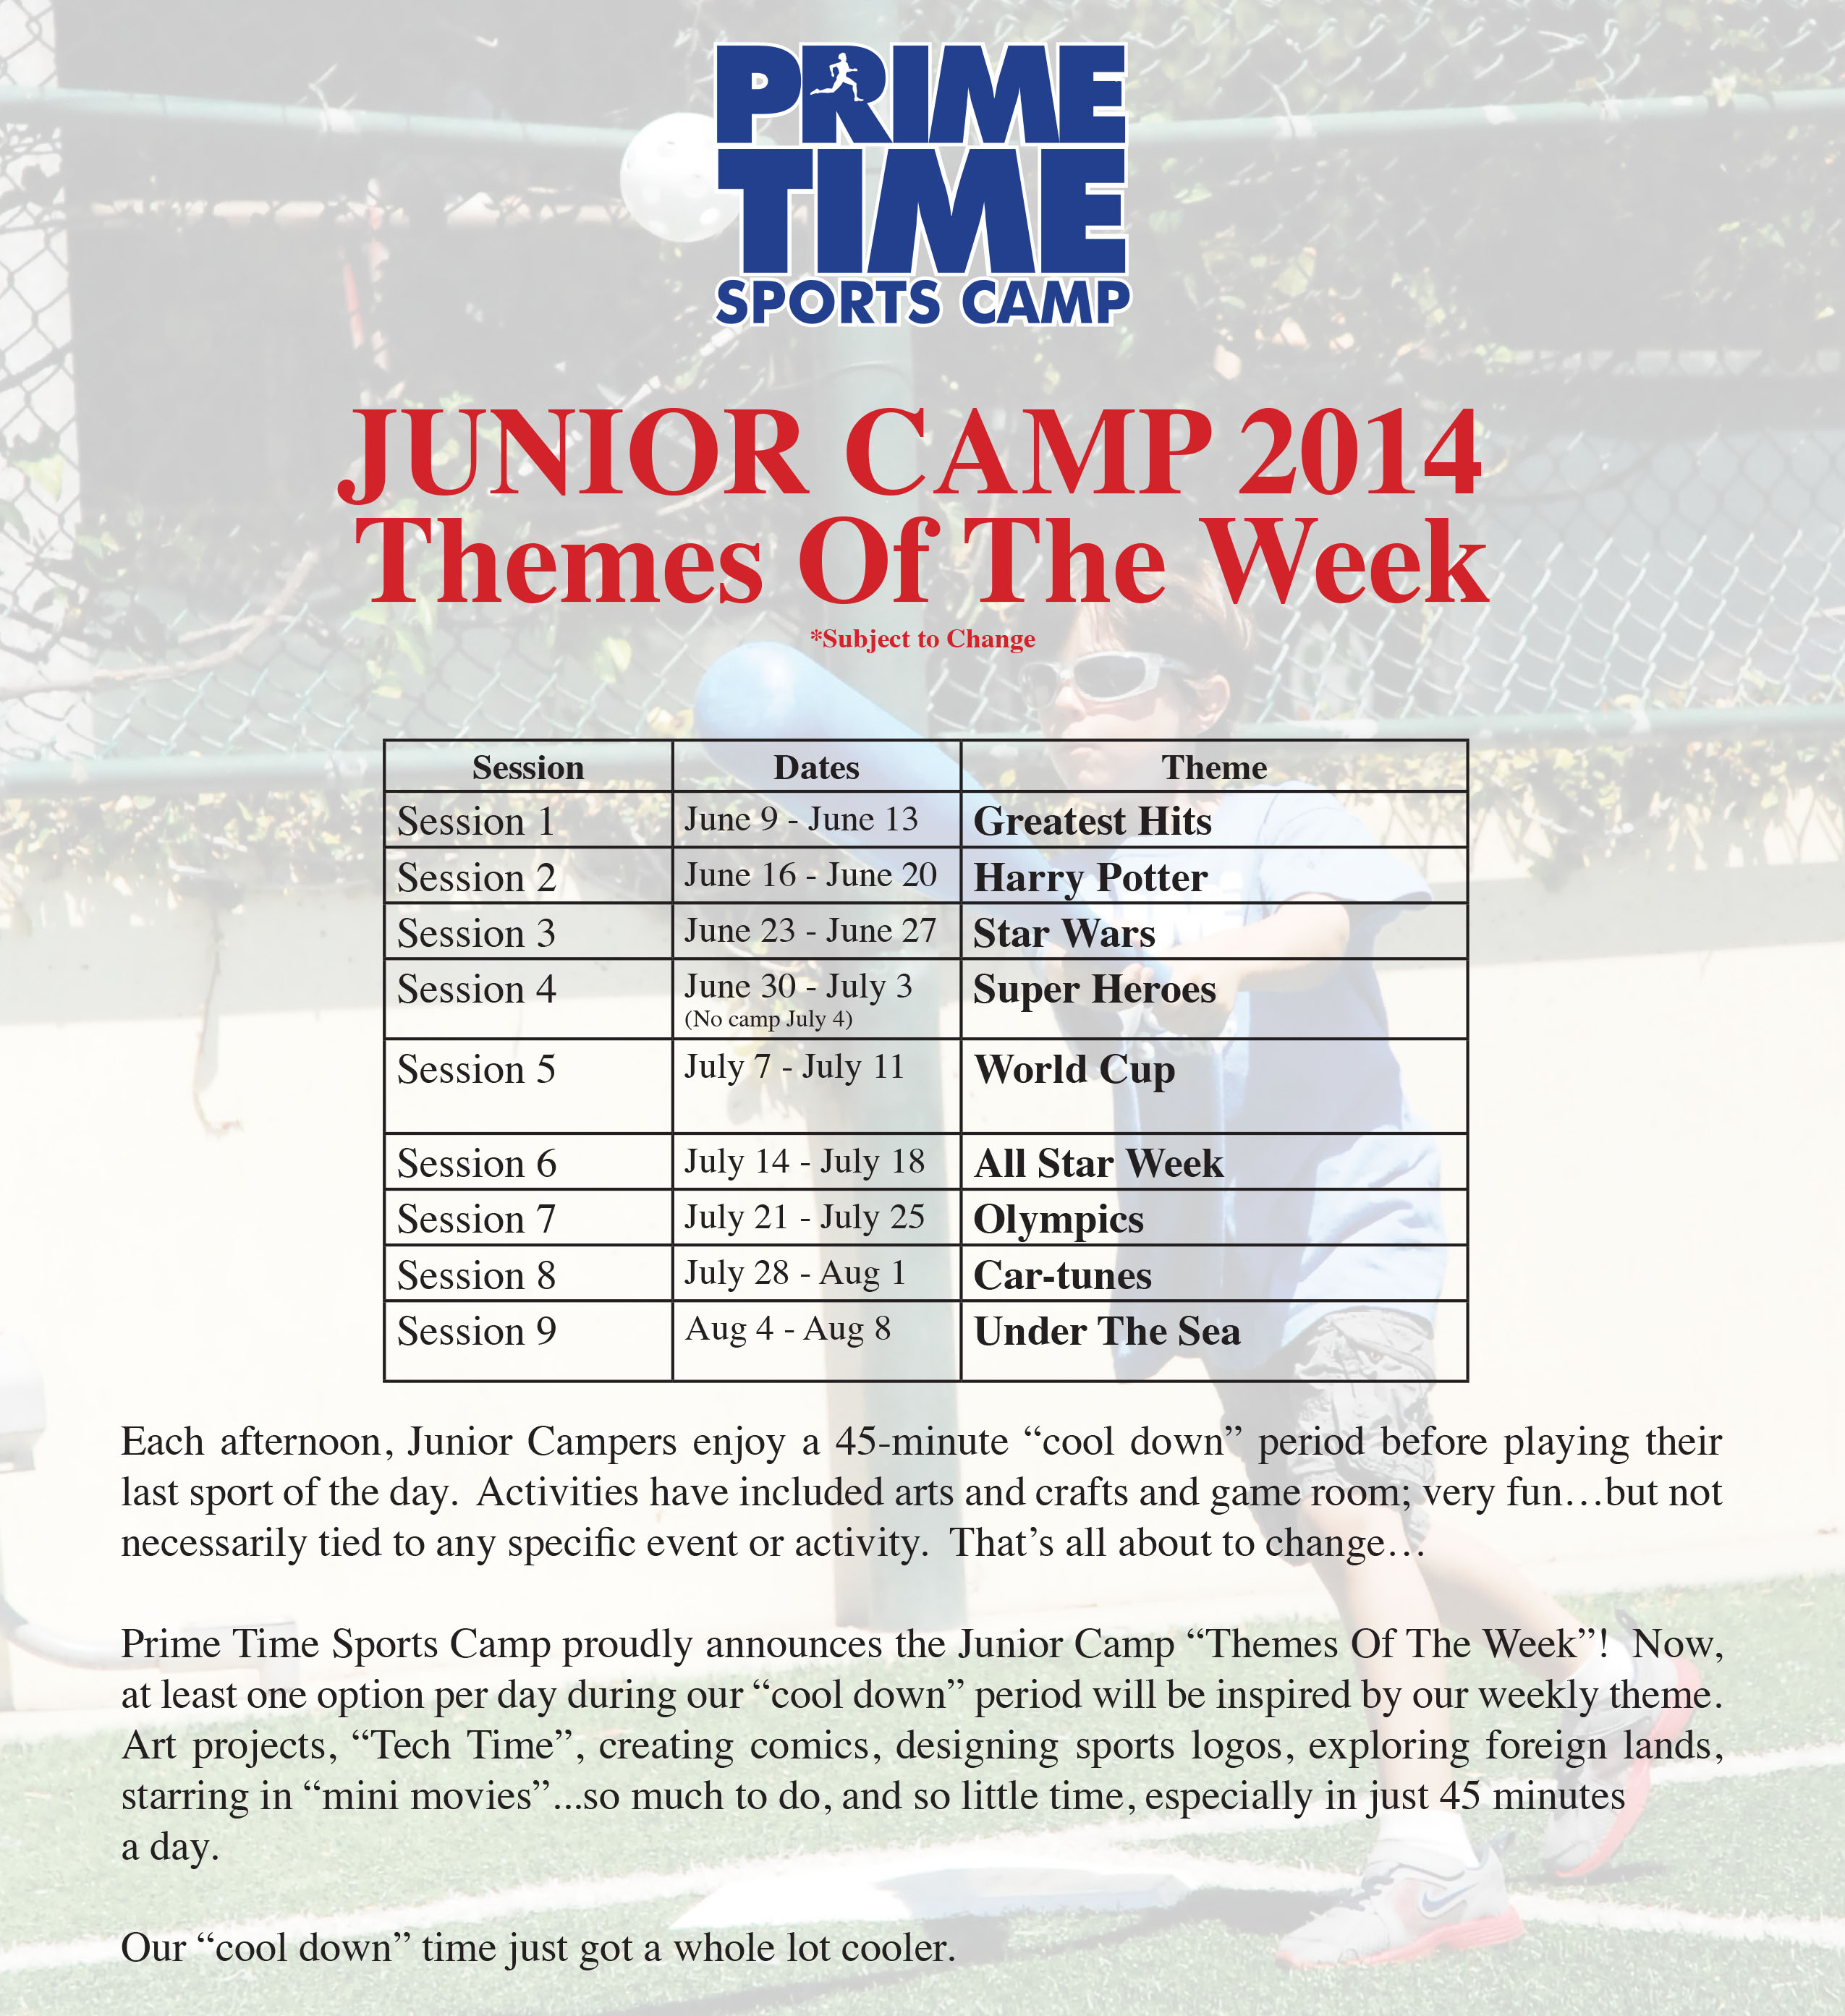 Themes of the week - Prime Time Sports Camp